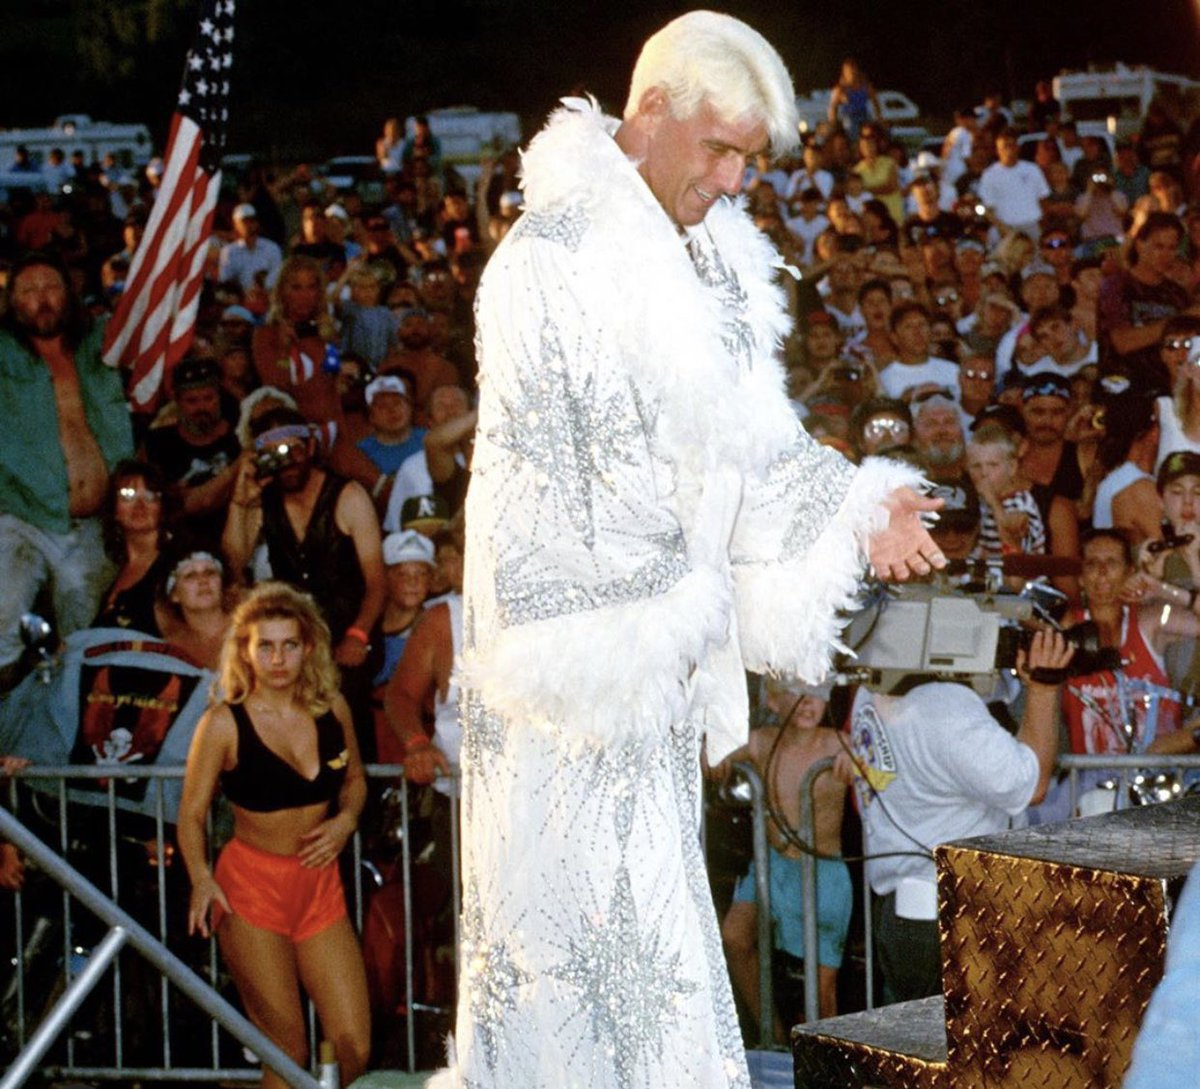 Winter Can't Stop The Ice King! WOOOOO!